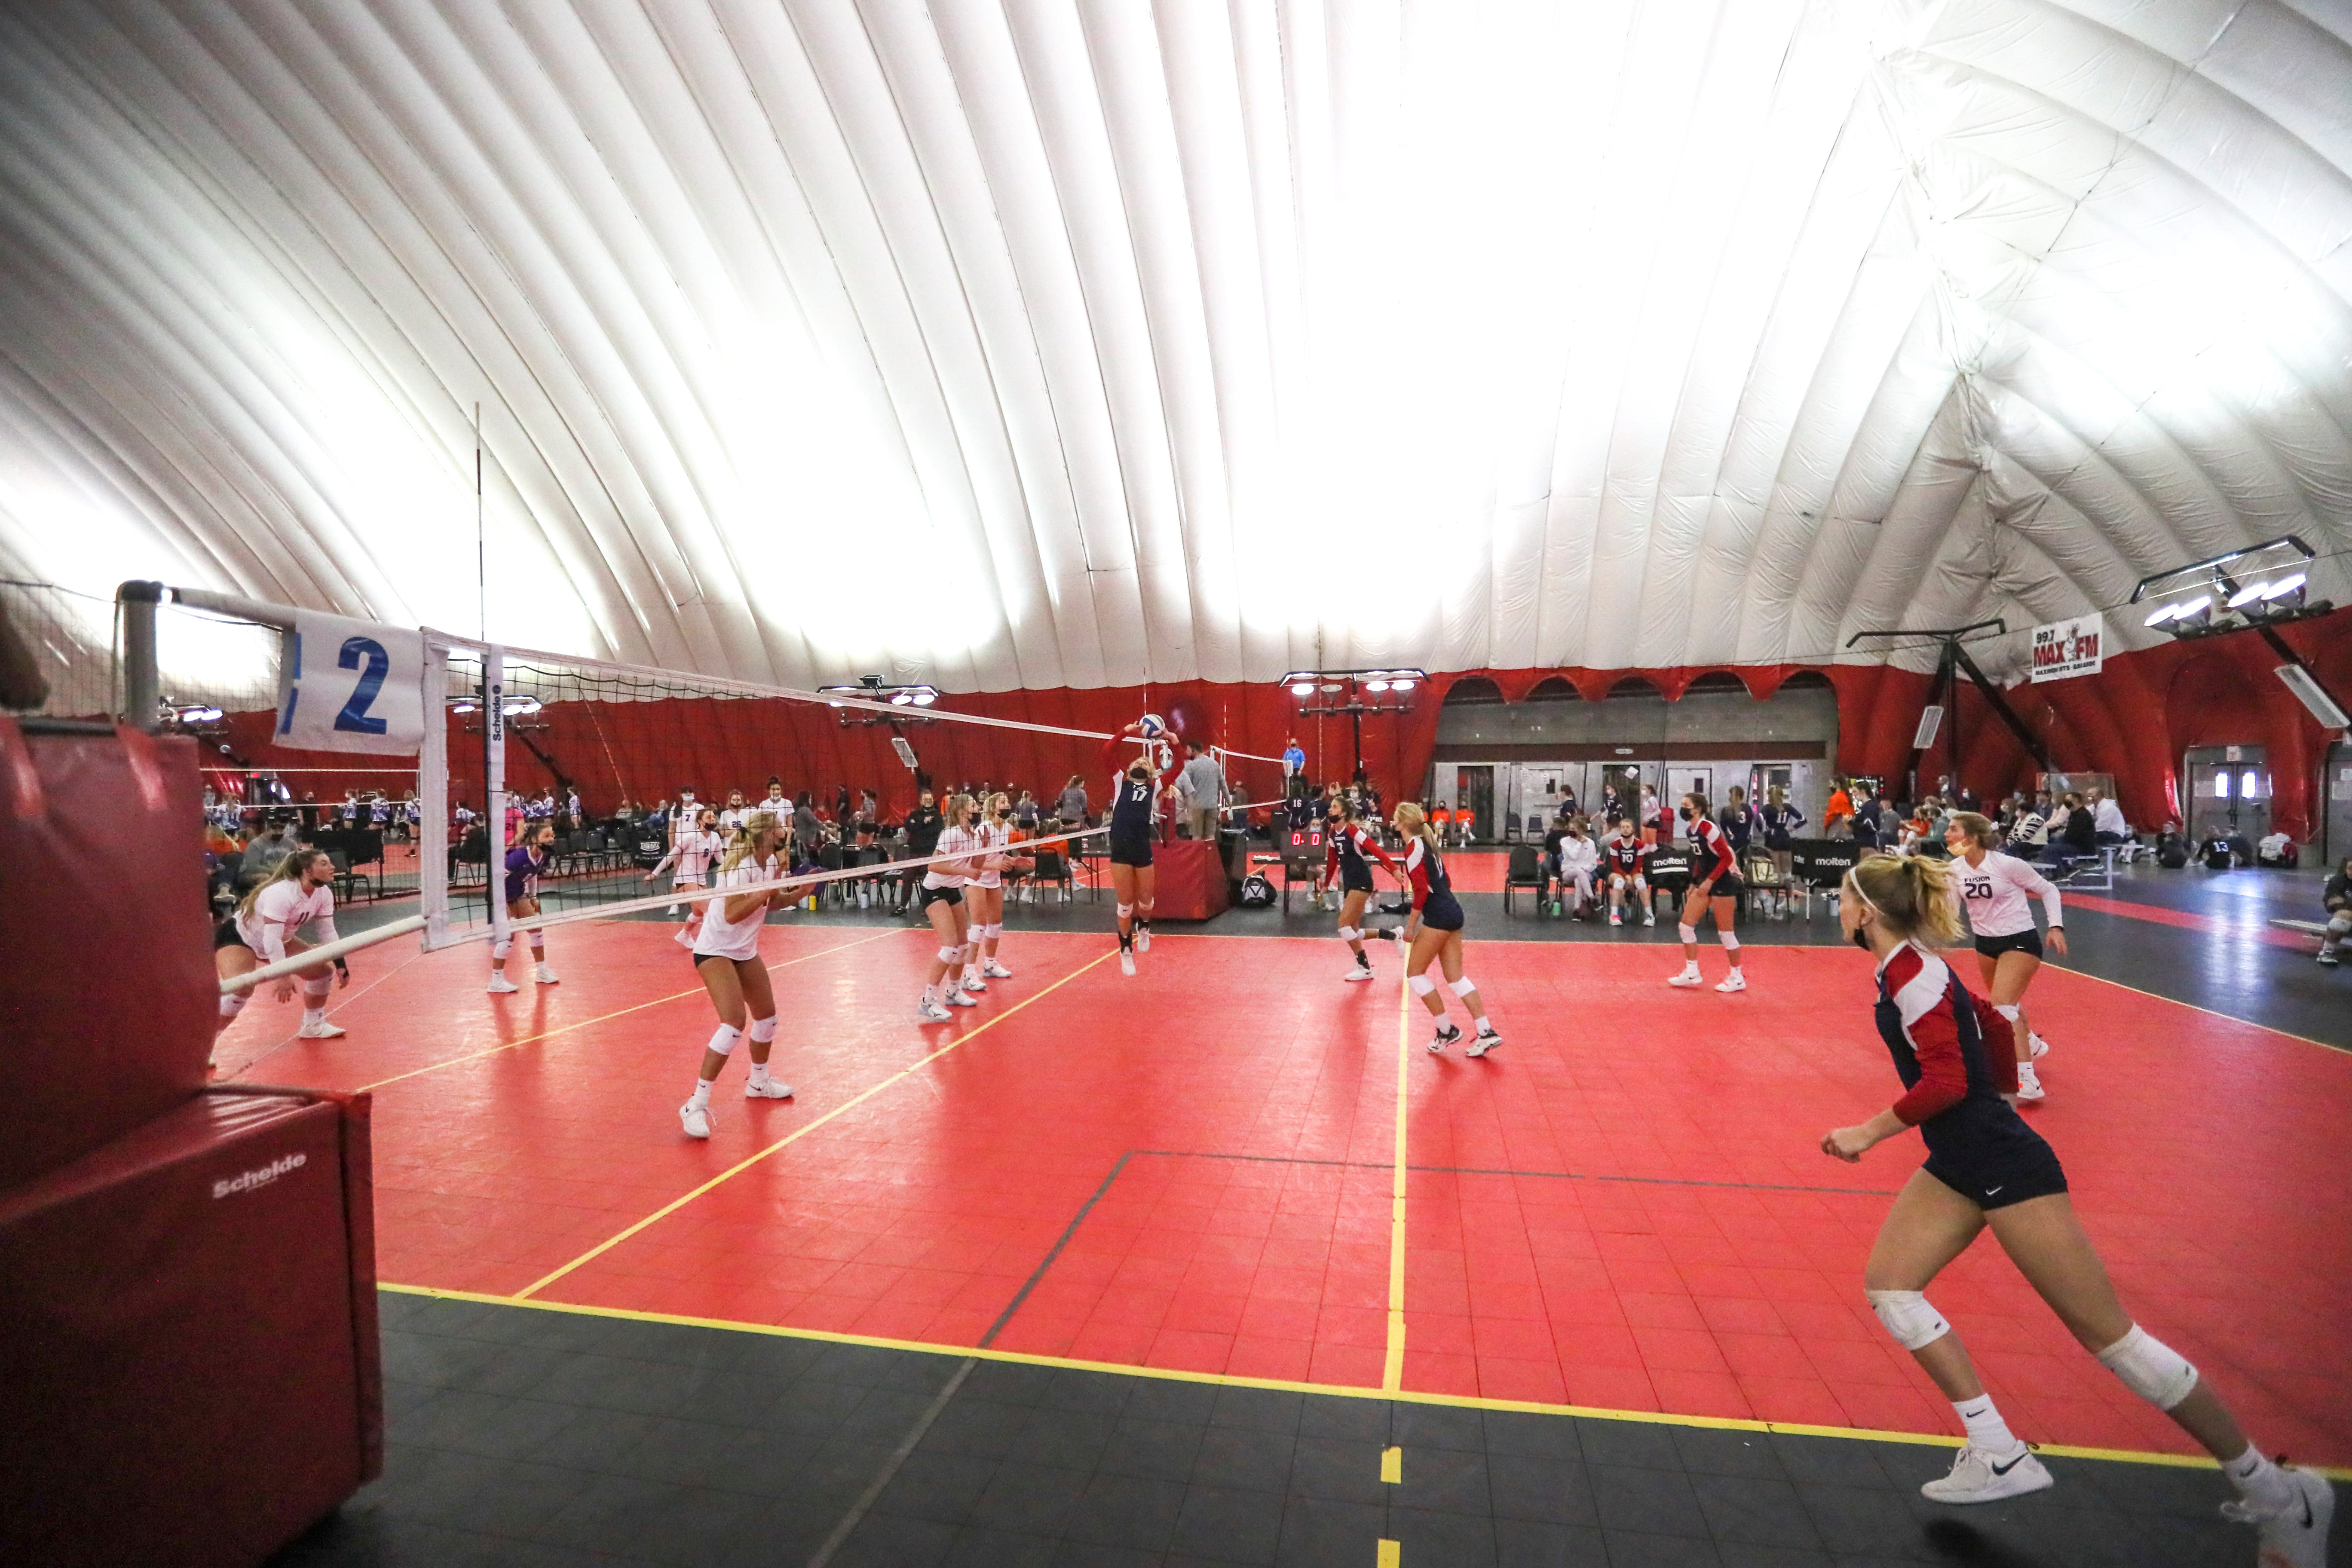 The 18-year-old teams battle one another during Diggin' in the Dells volleyball tournament April 17, 2021, at Woodside Sports Complex at Wisconsin Dells.